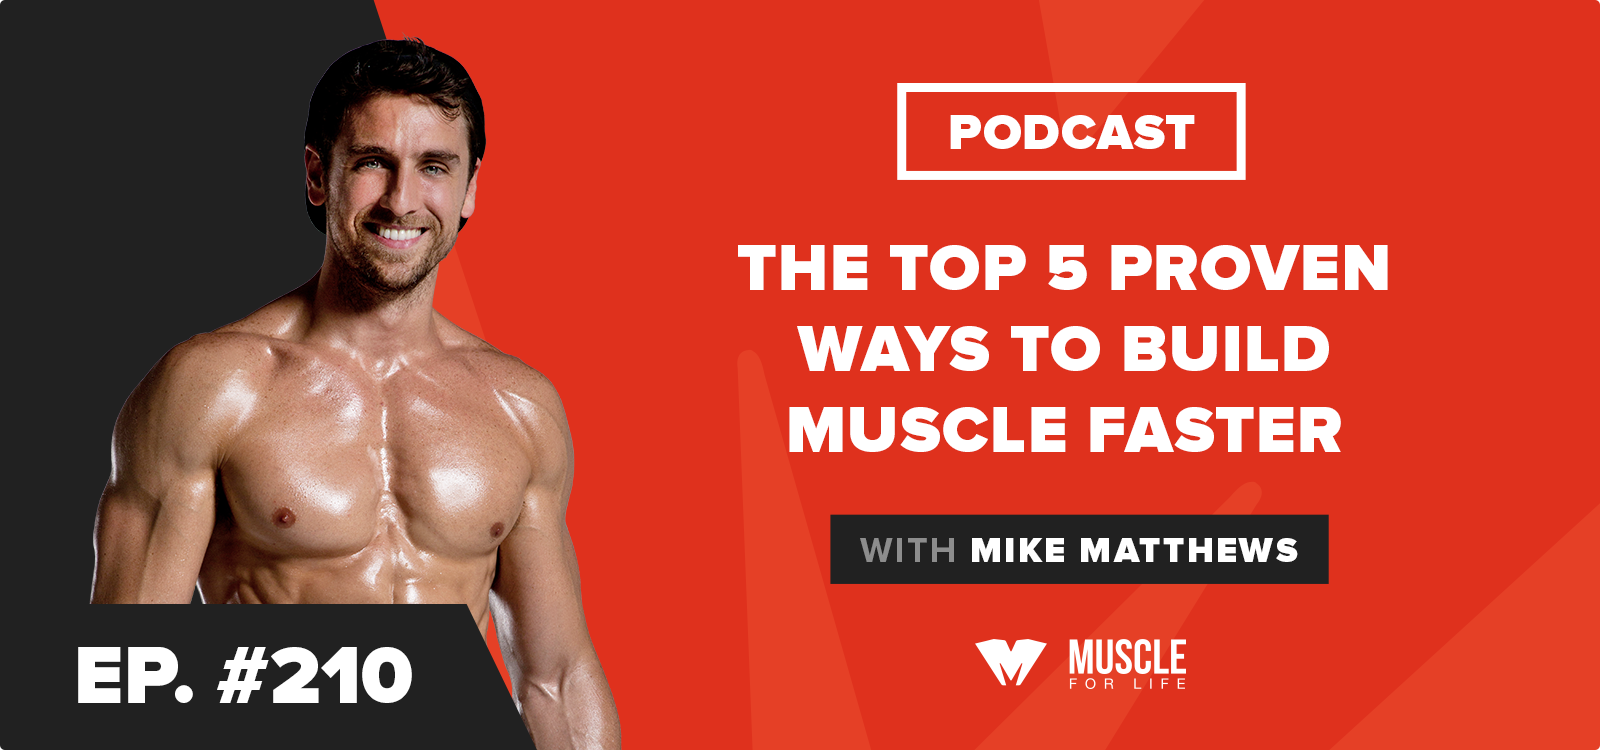 The Top 5 Proven Ways to Build Muscle Faster